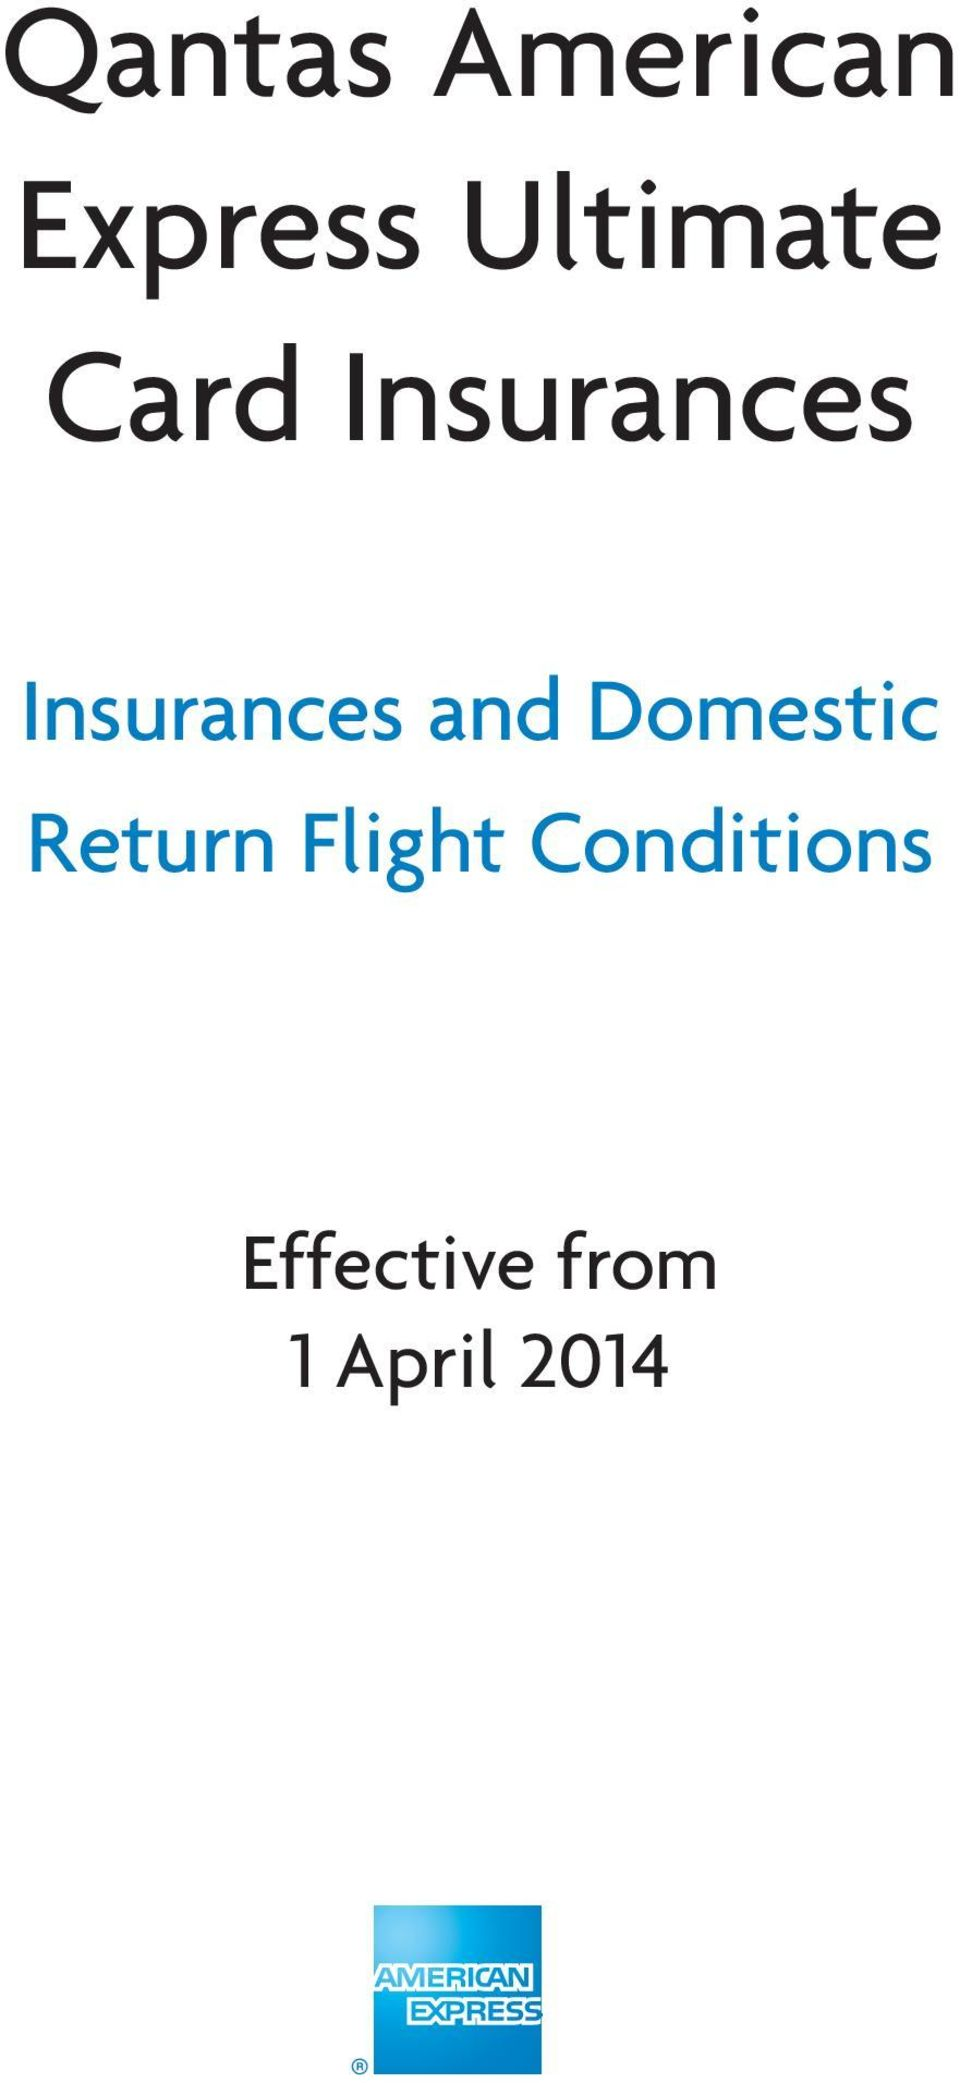 Insurances and Domestic Return